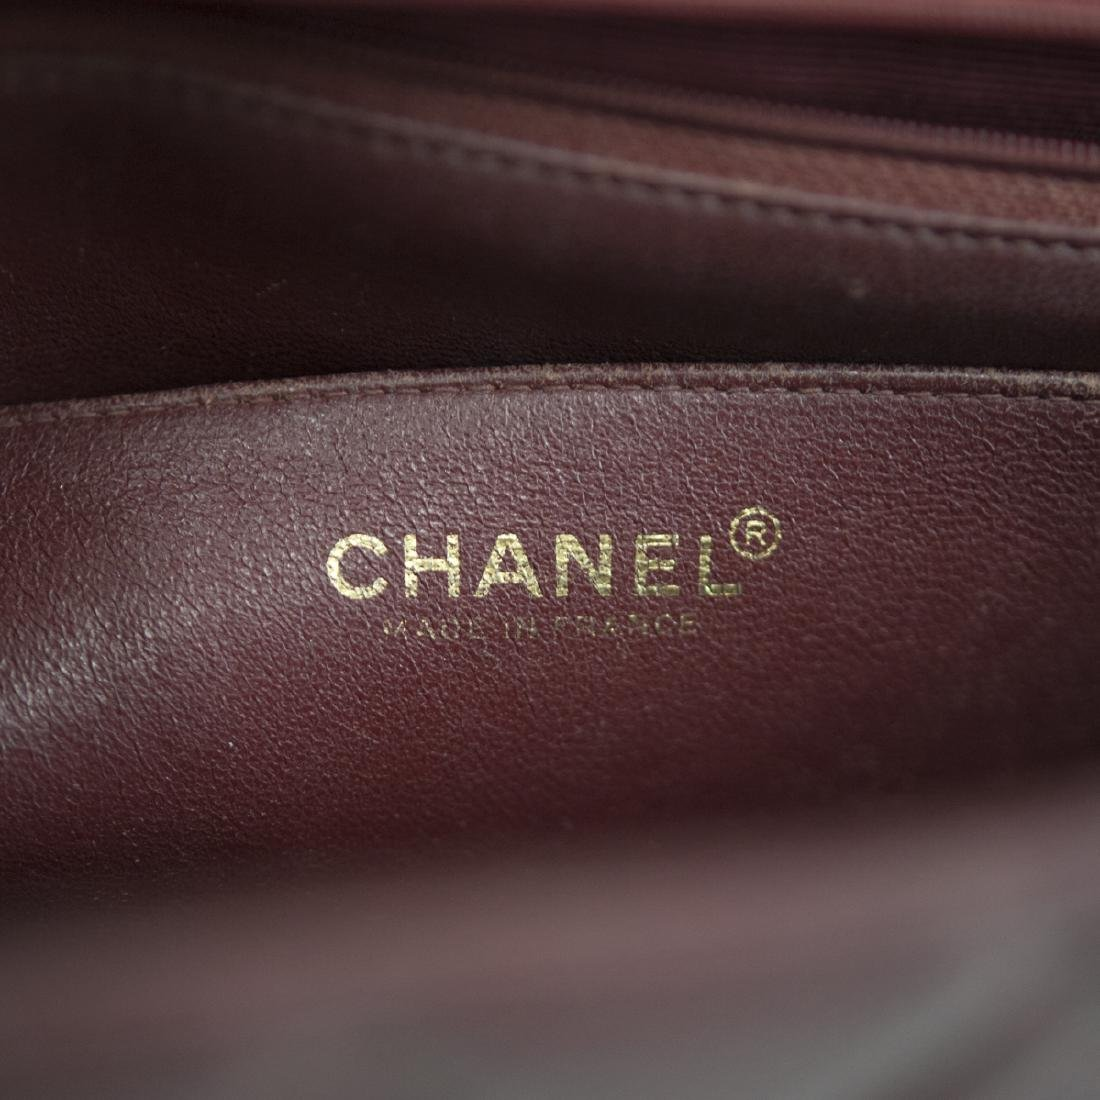 Chanel Caviar Leather Flap Bag - 2